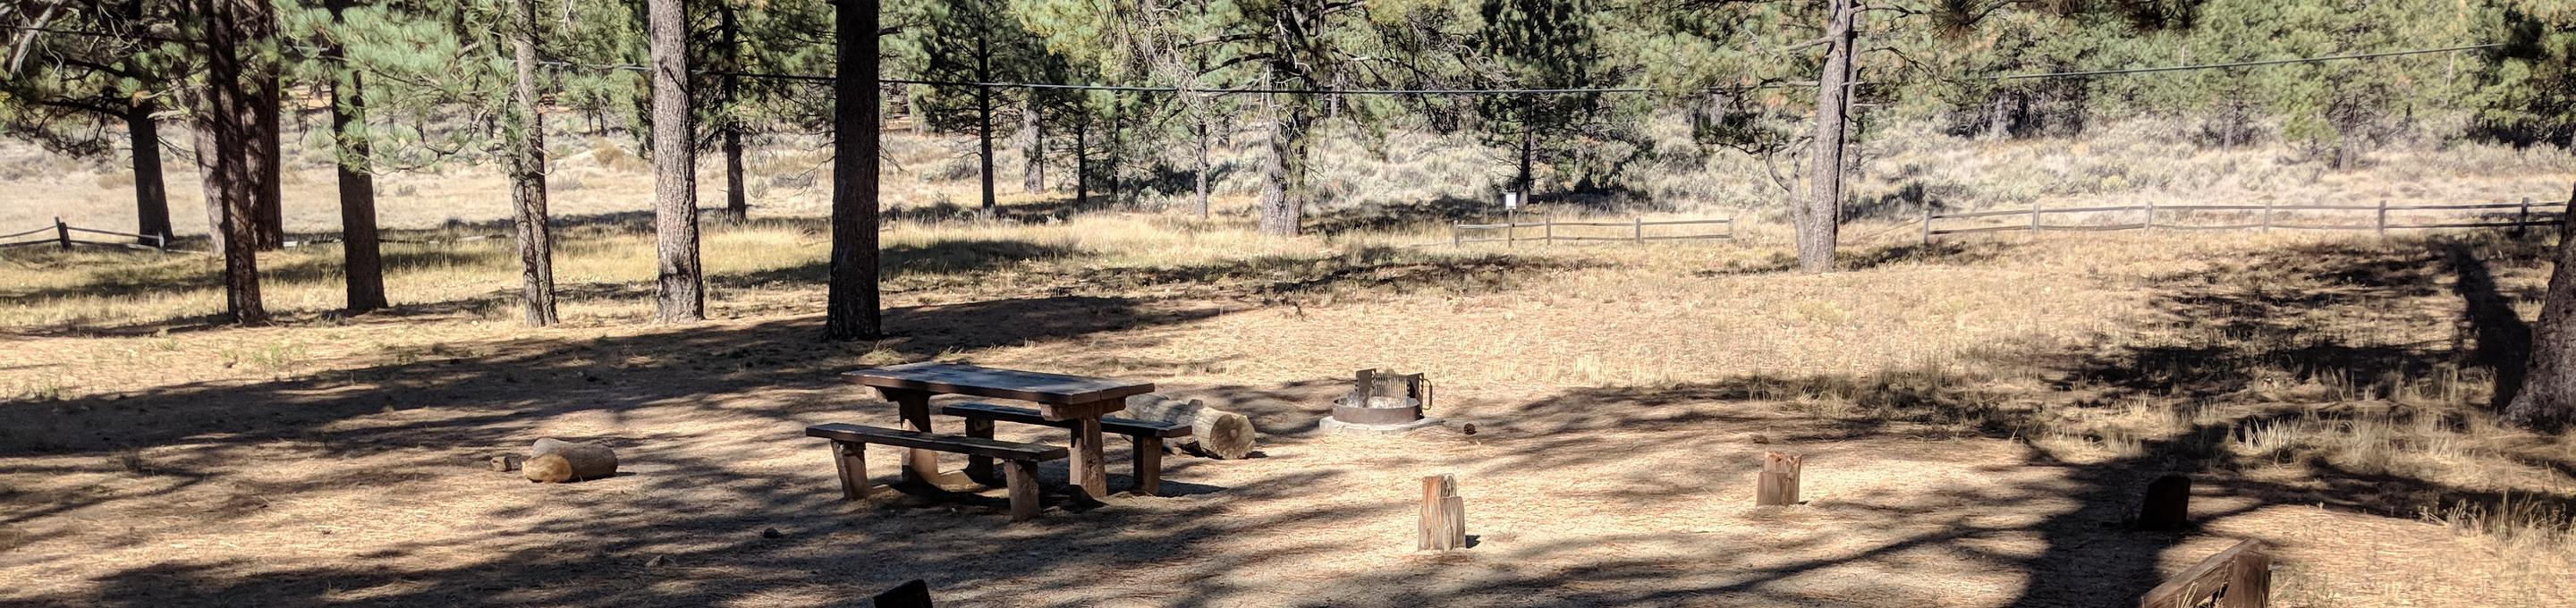 Laguna Campground site #10 wooded camping space view and picnic area.